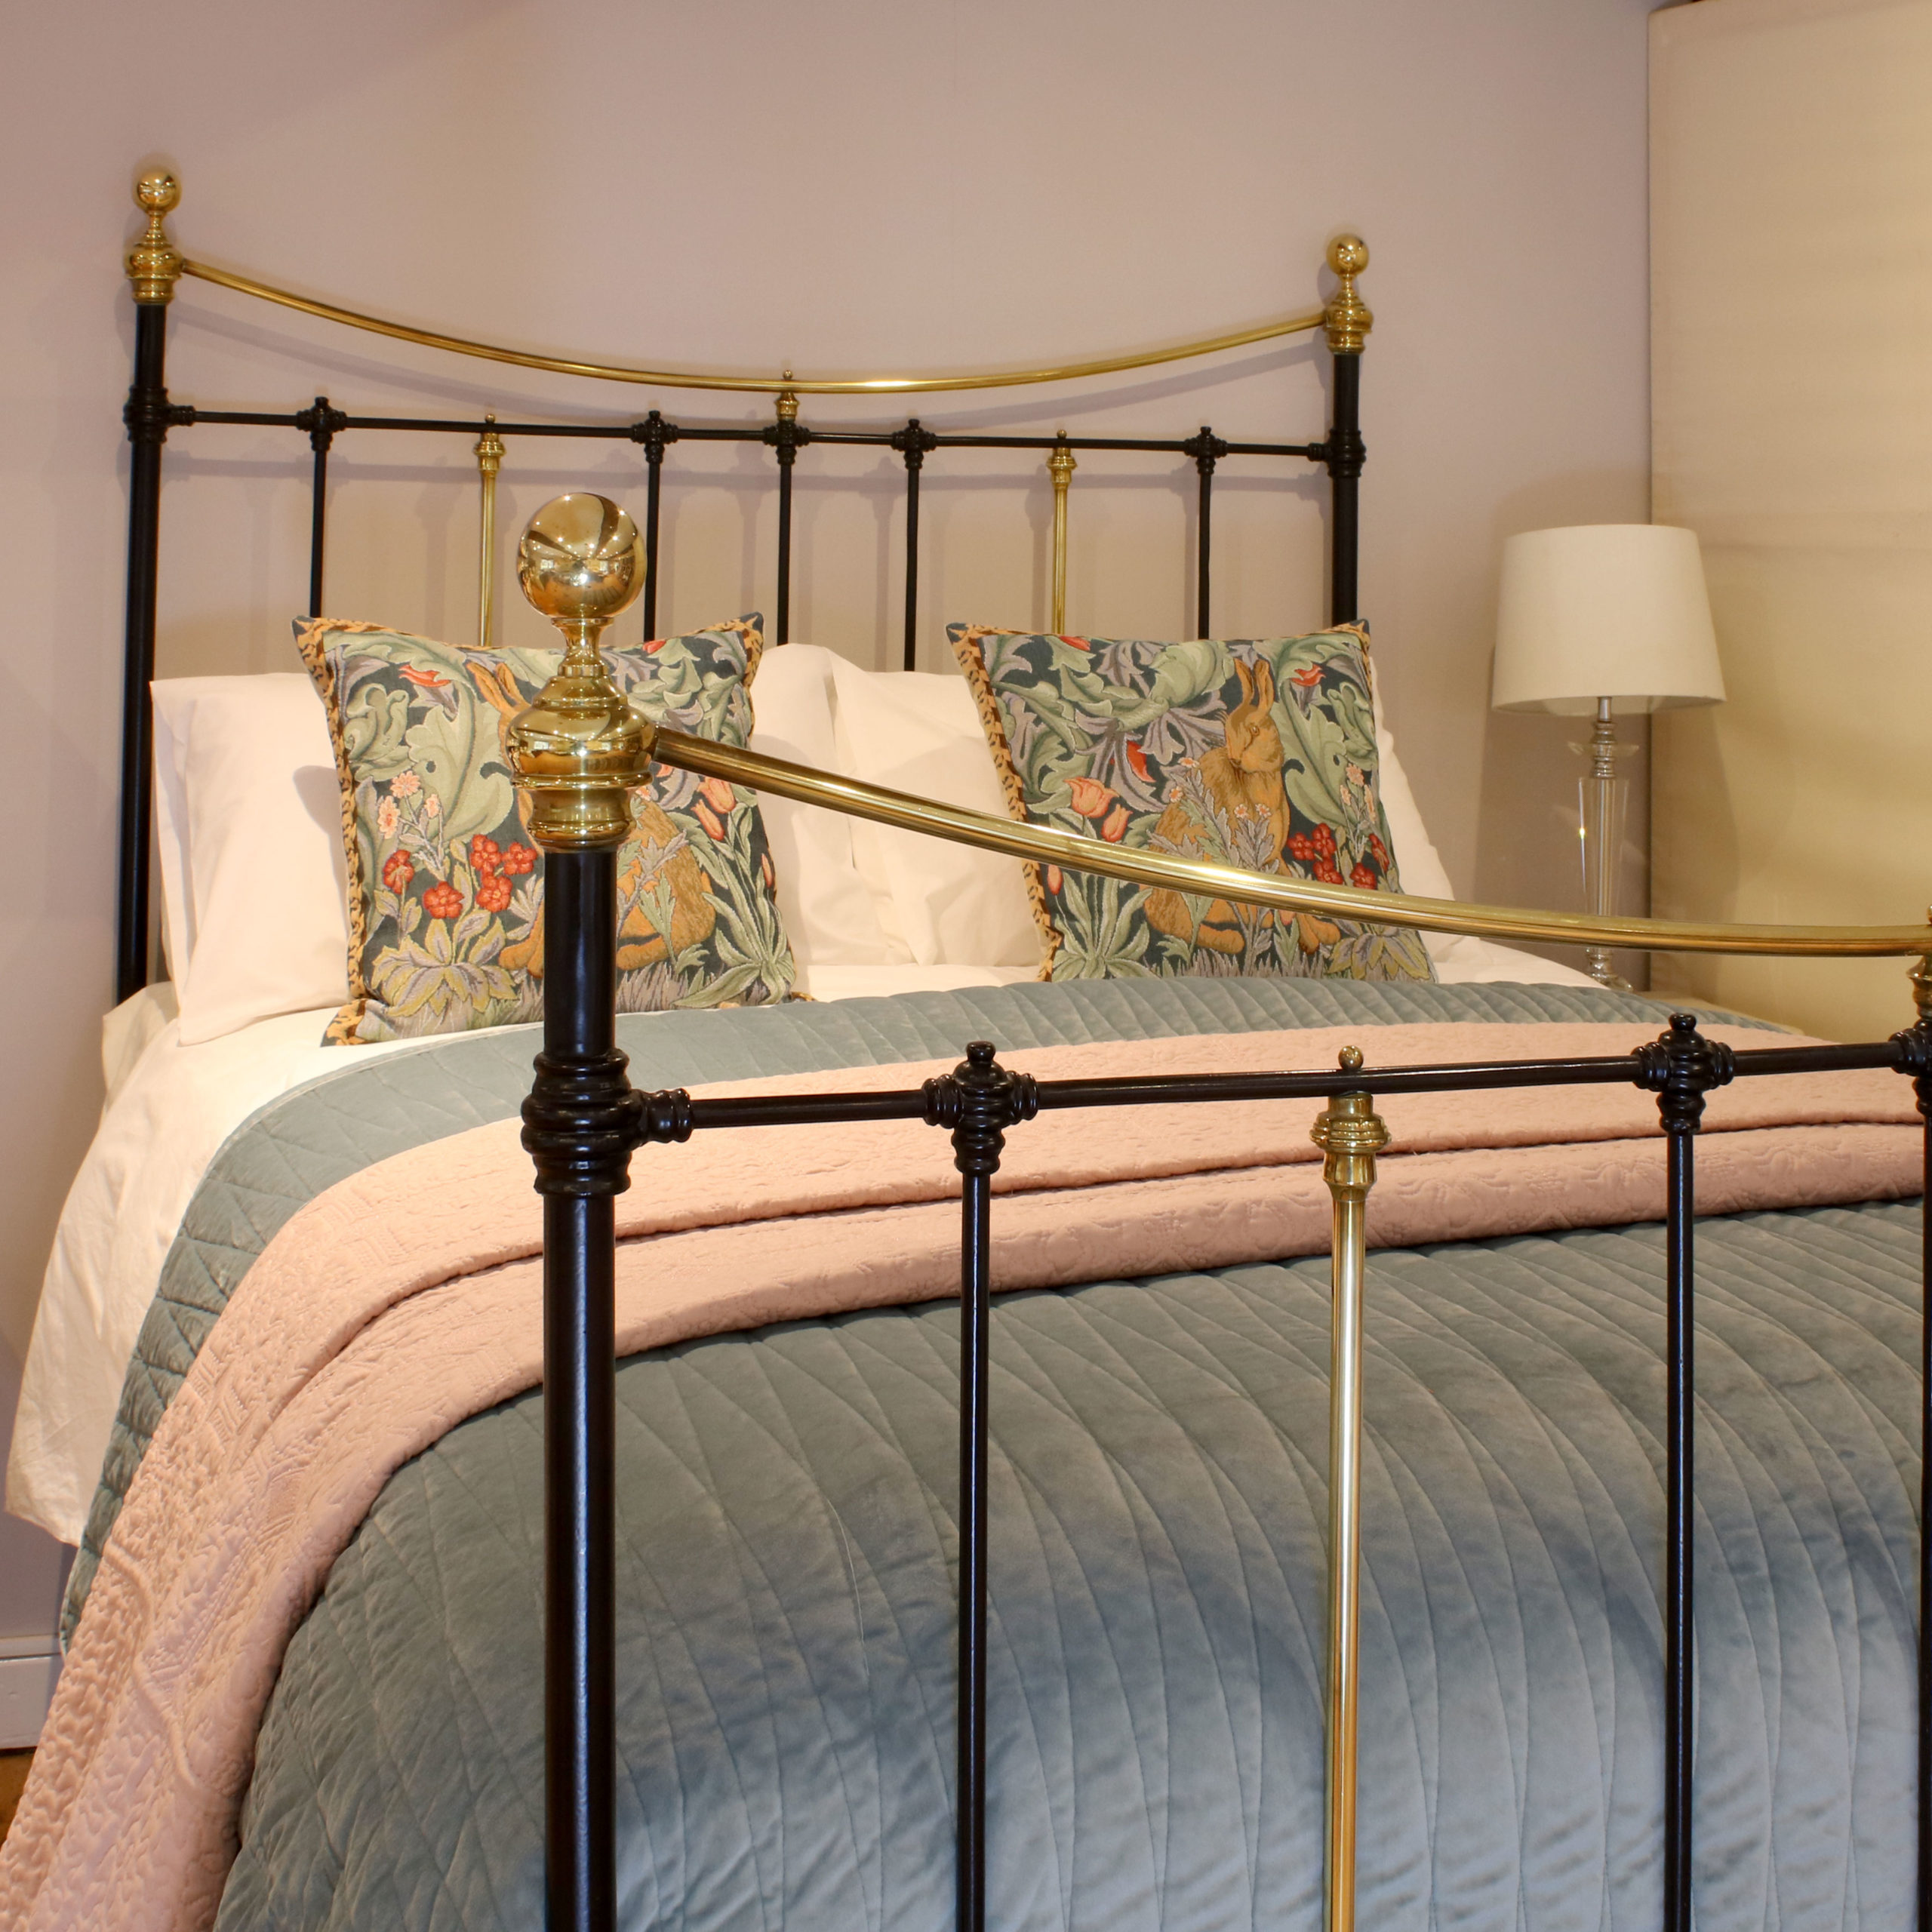 5ft-Black-Brass-and-Iron-Curved-Top-Rail-MK216-2